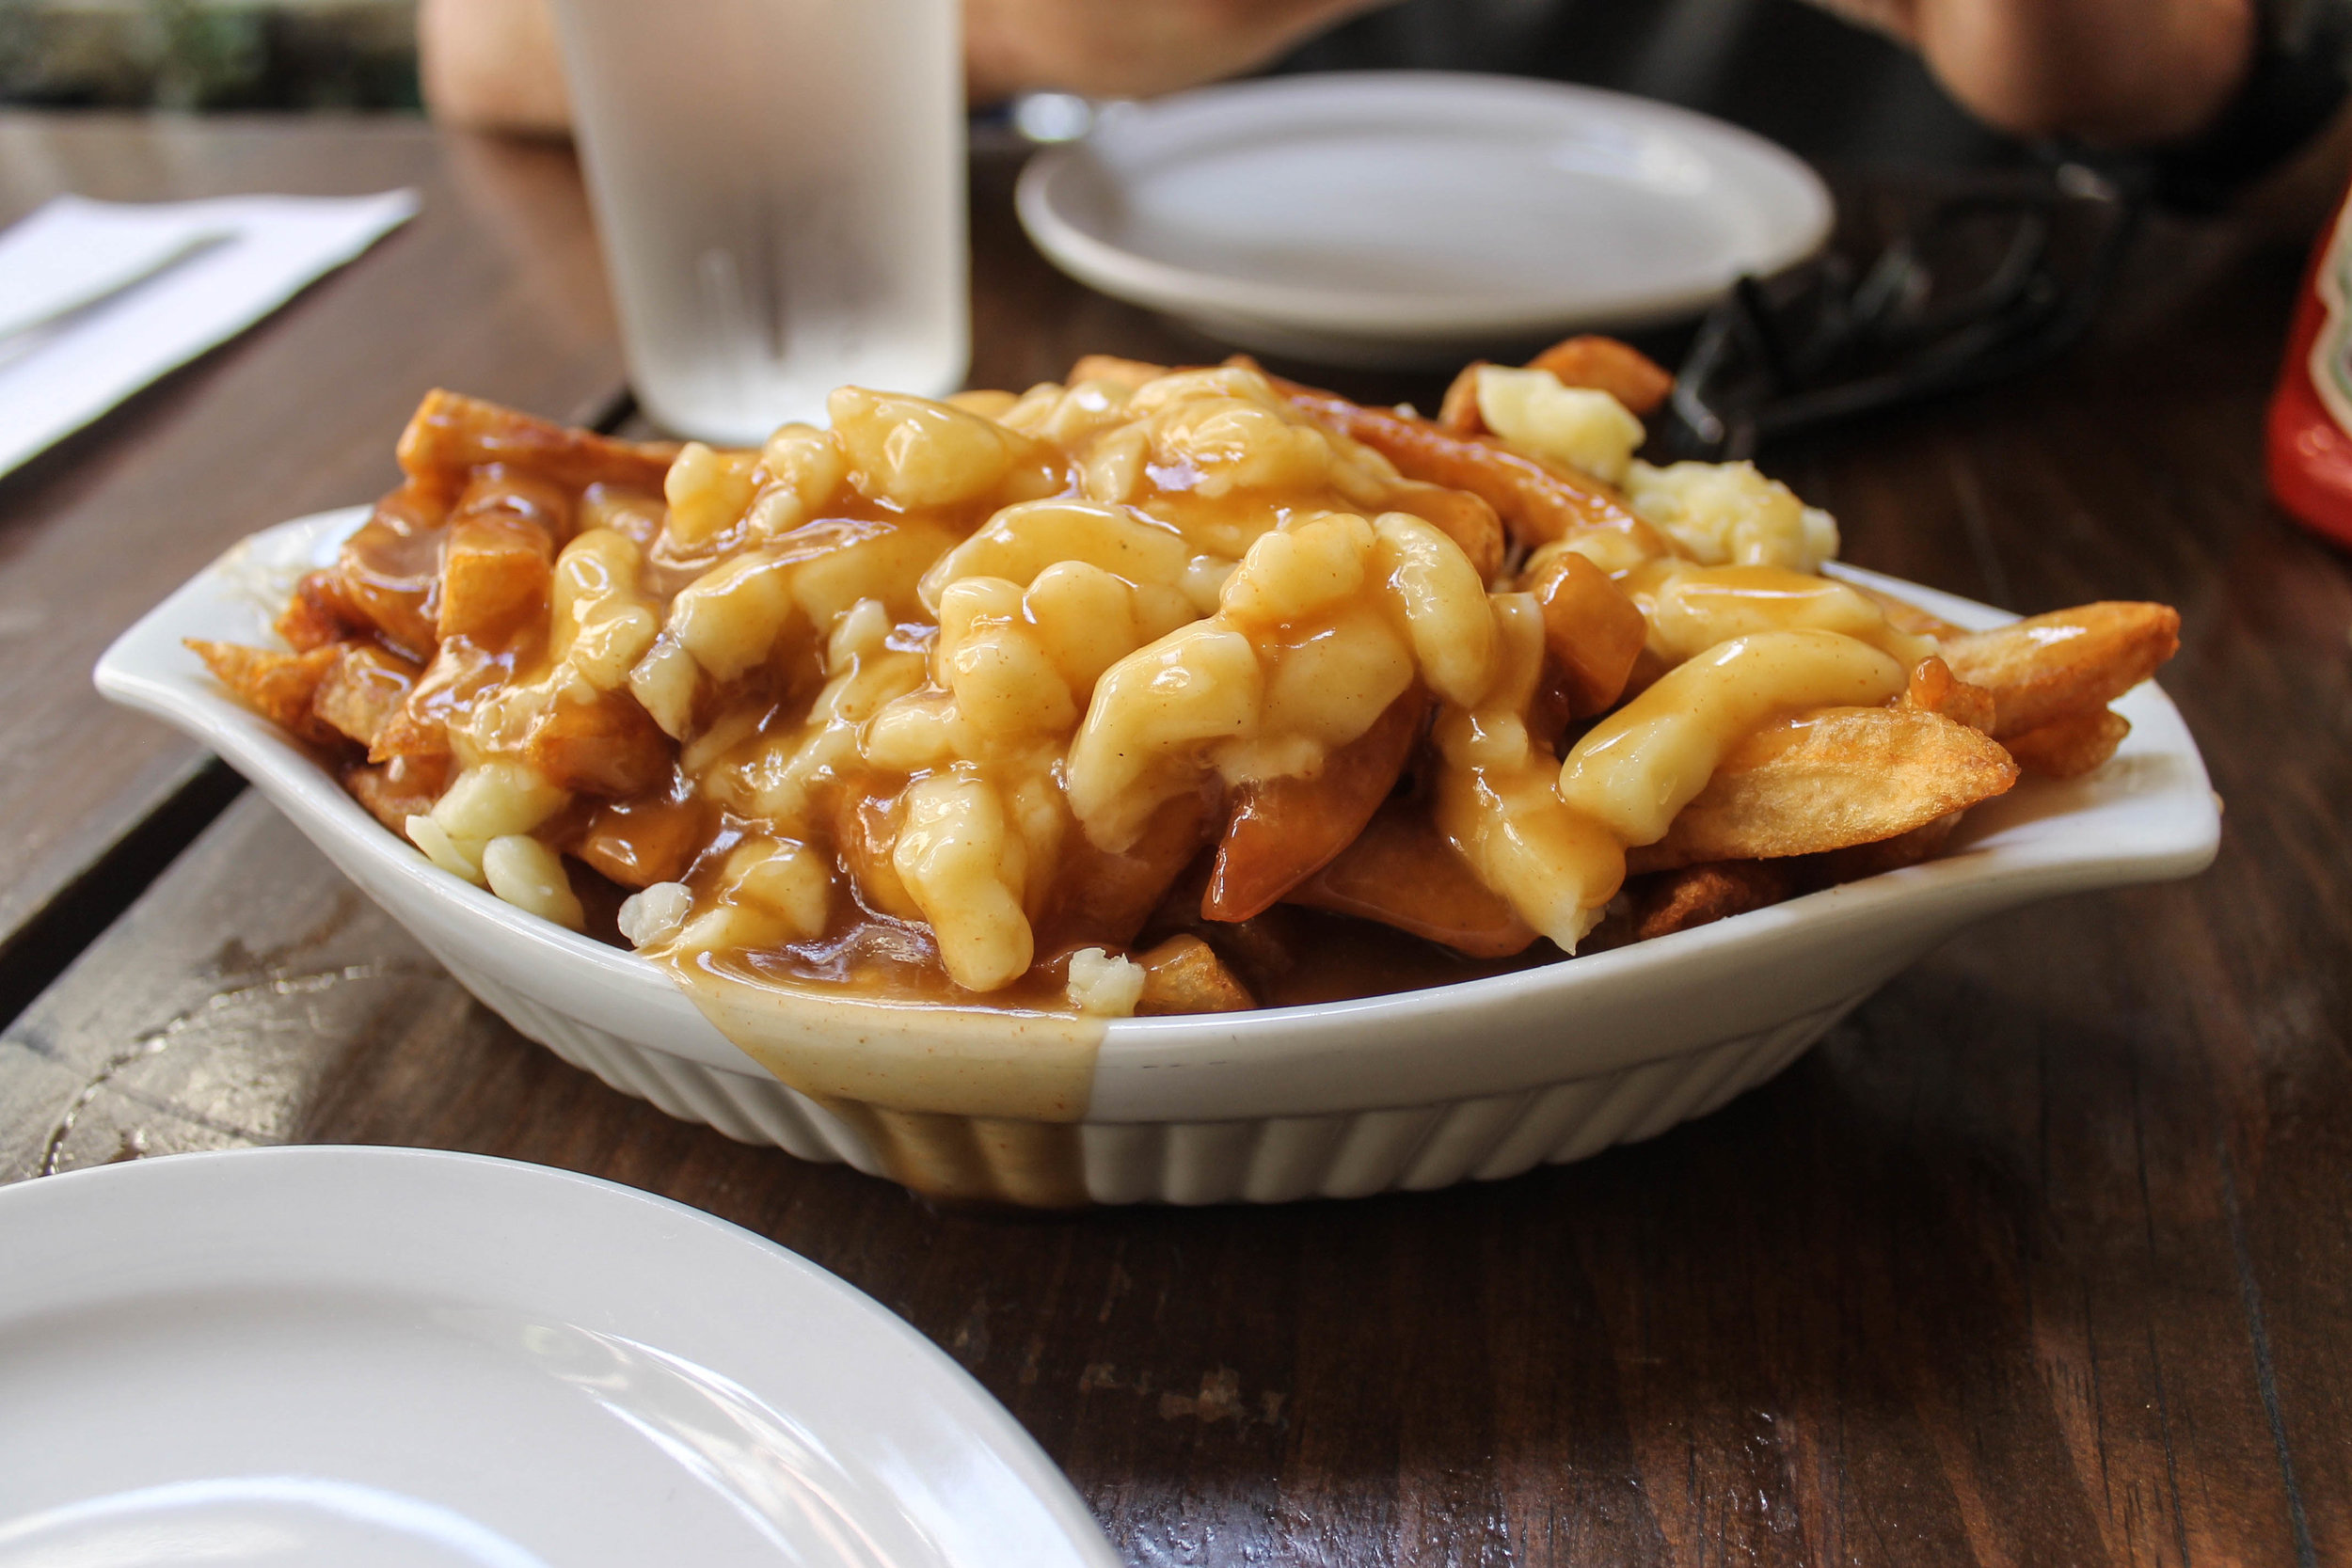 Poutine, all day every day